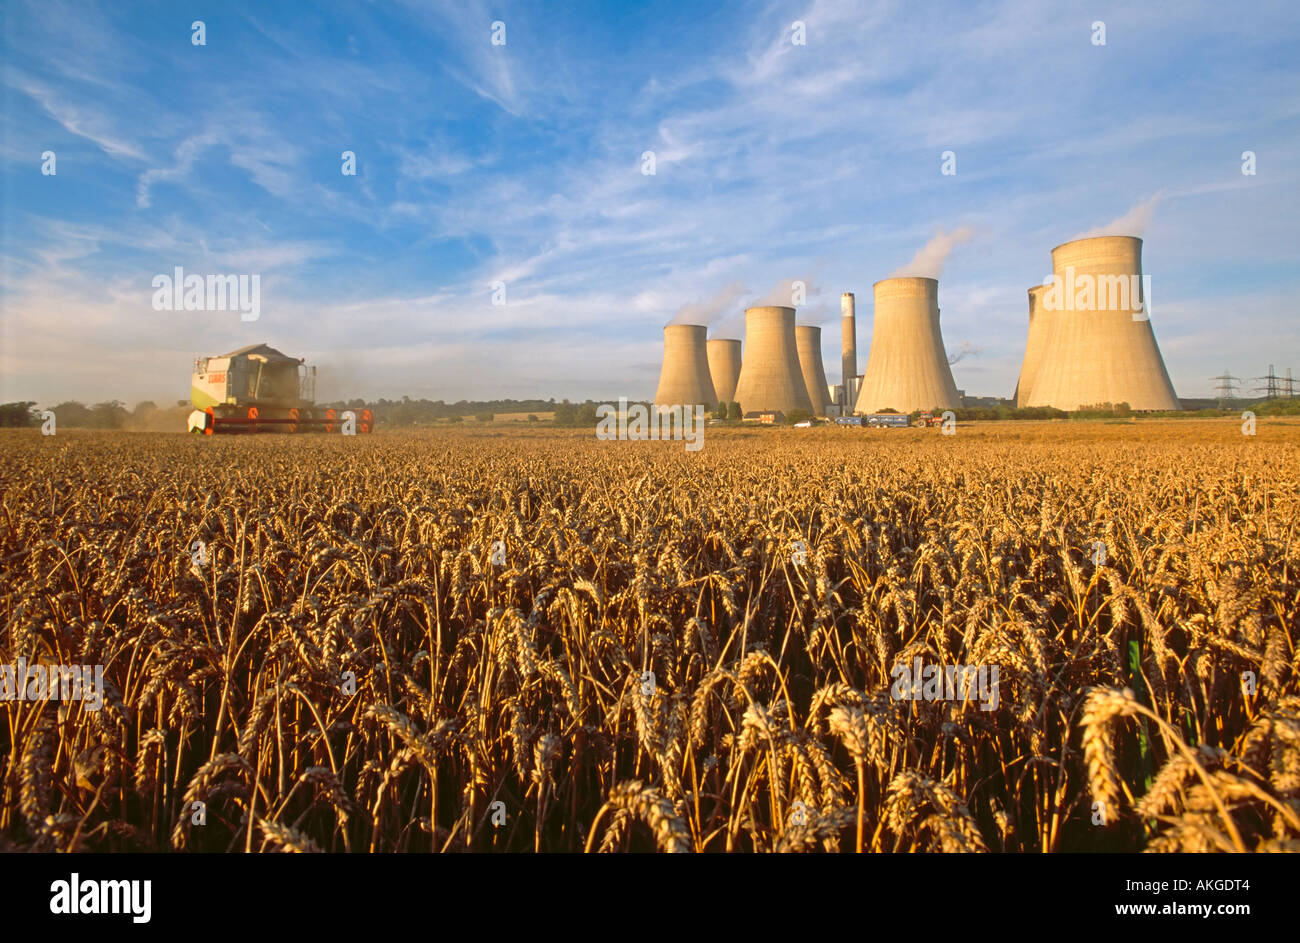 A combine harvester harvesting a wheat crop with Ratcliffe on Sour coal fired power station behind. - Stock Image